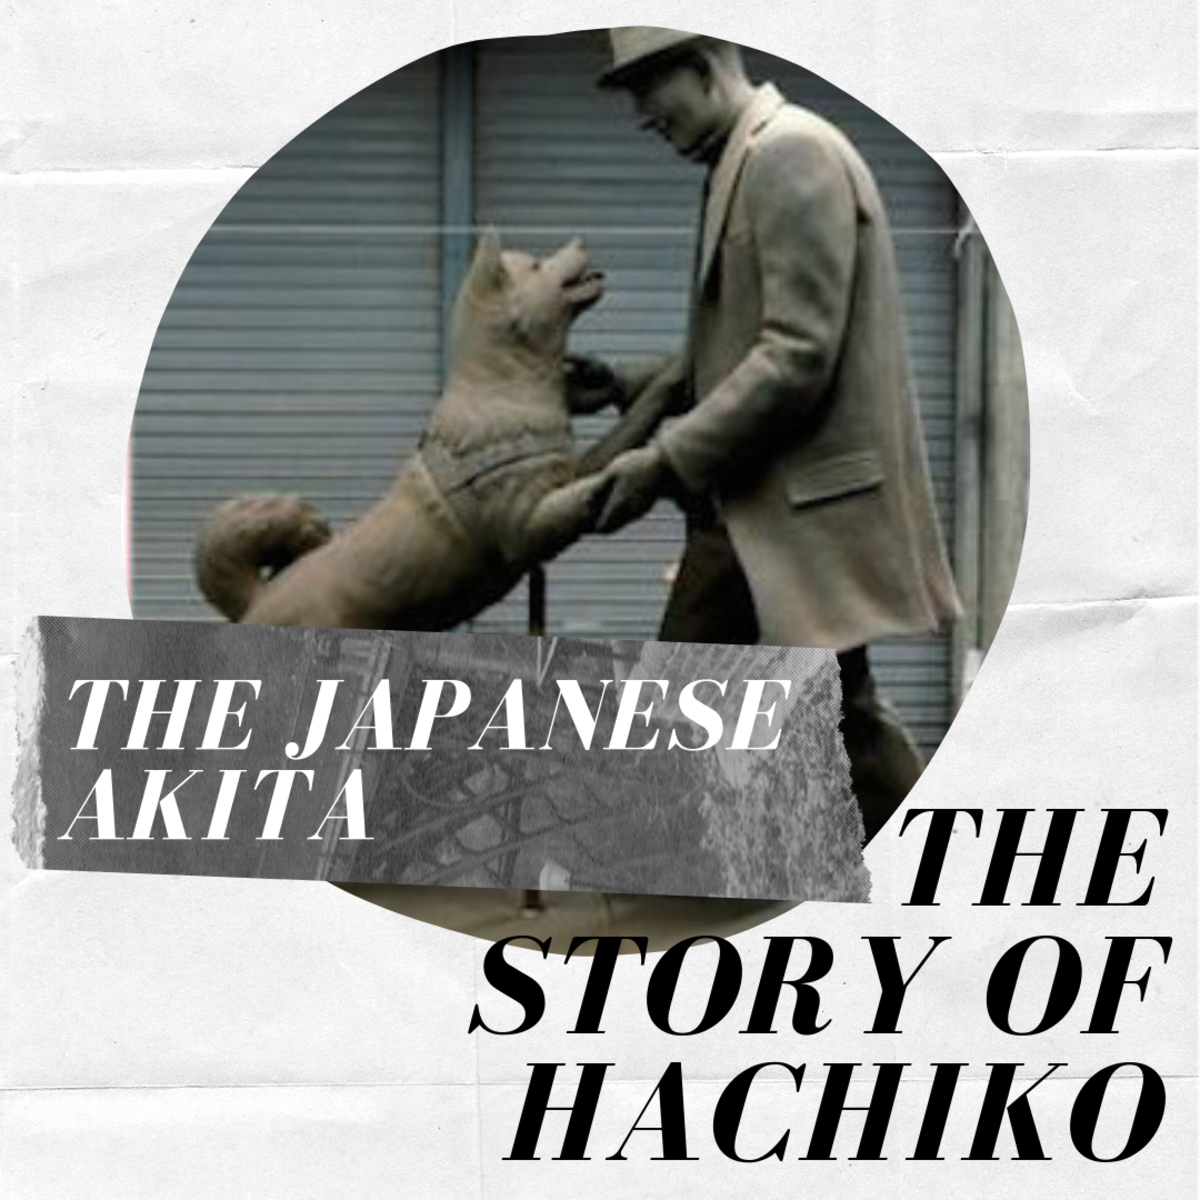 Japanese Akita Inu: The Story of Hachiko, the Loyal Dog